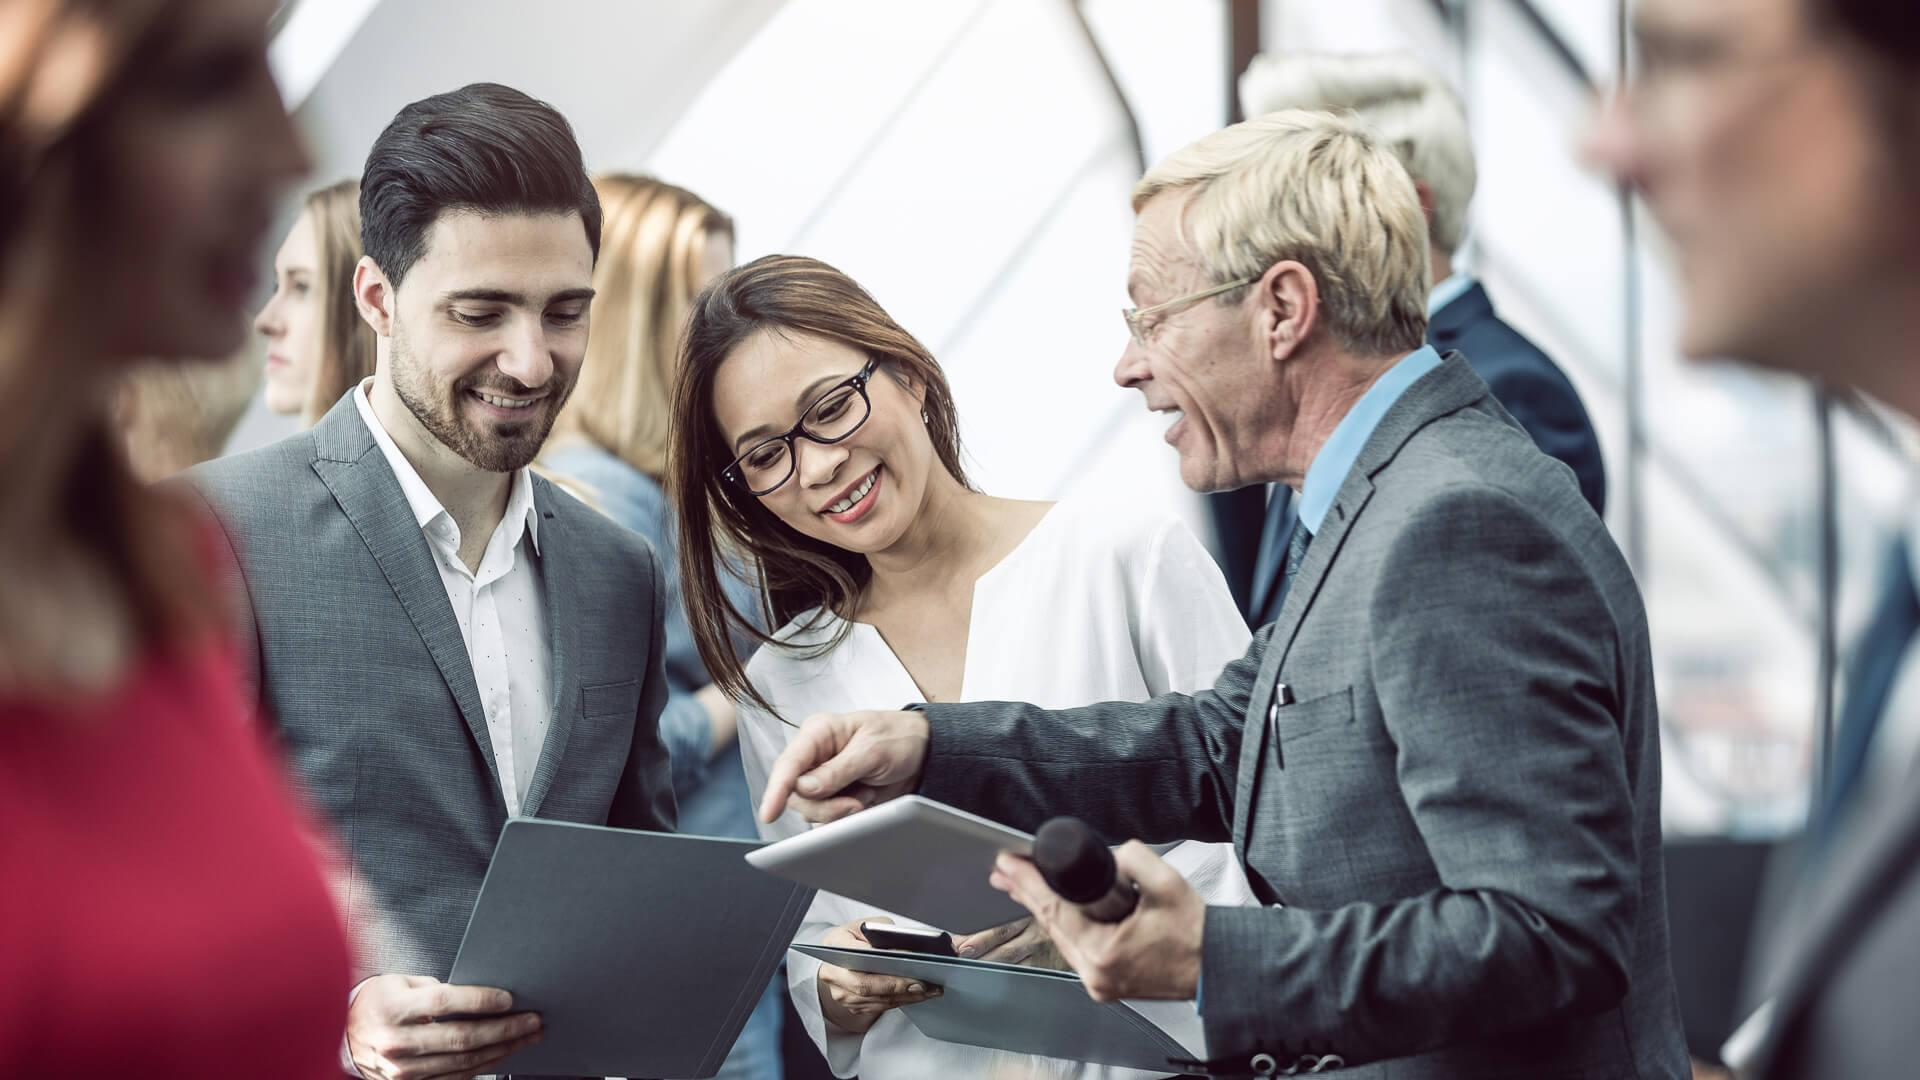 Unique Strengths Millennials and Boomers Bring to the Workplace